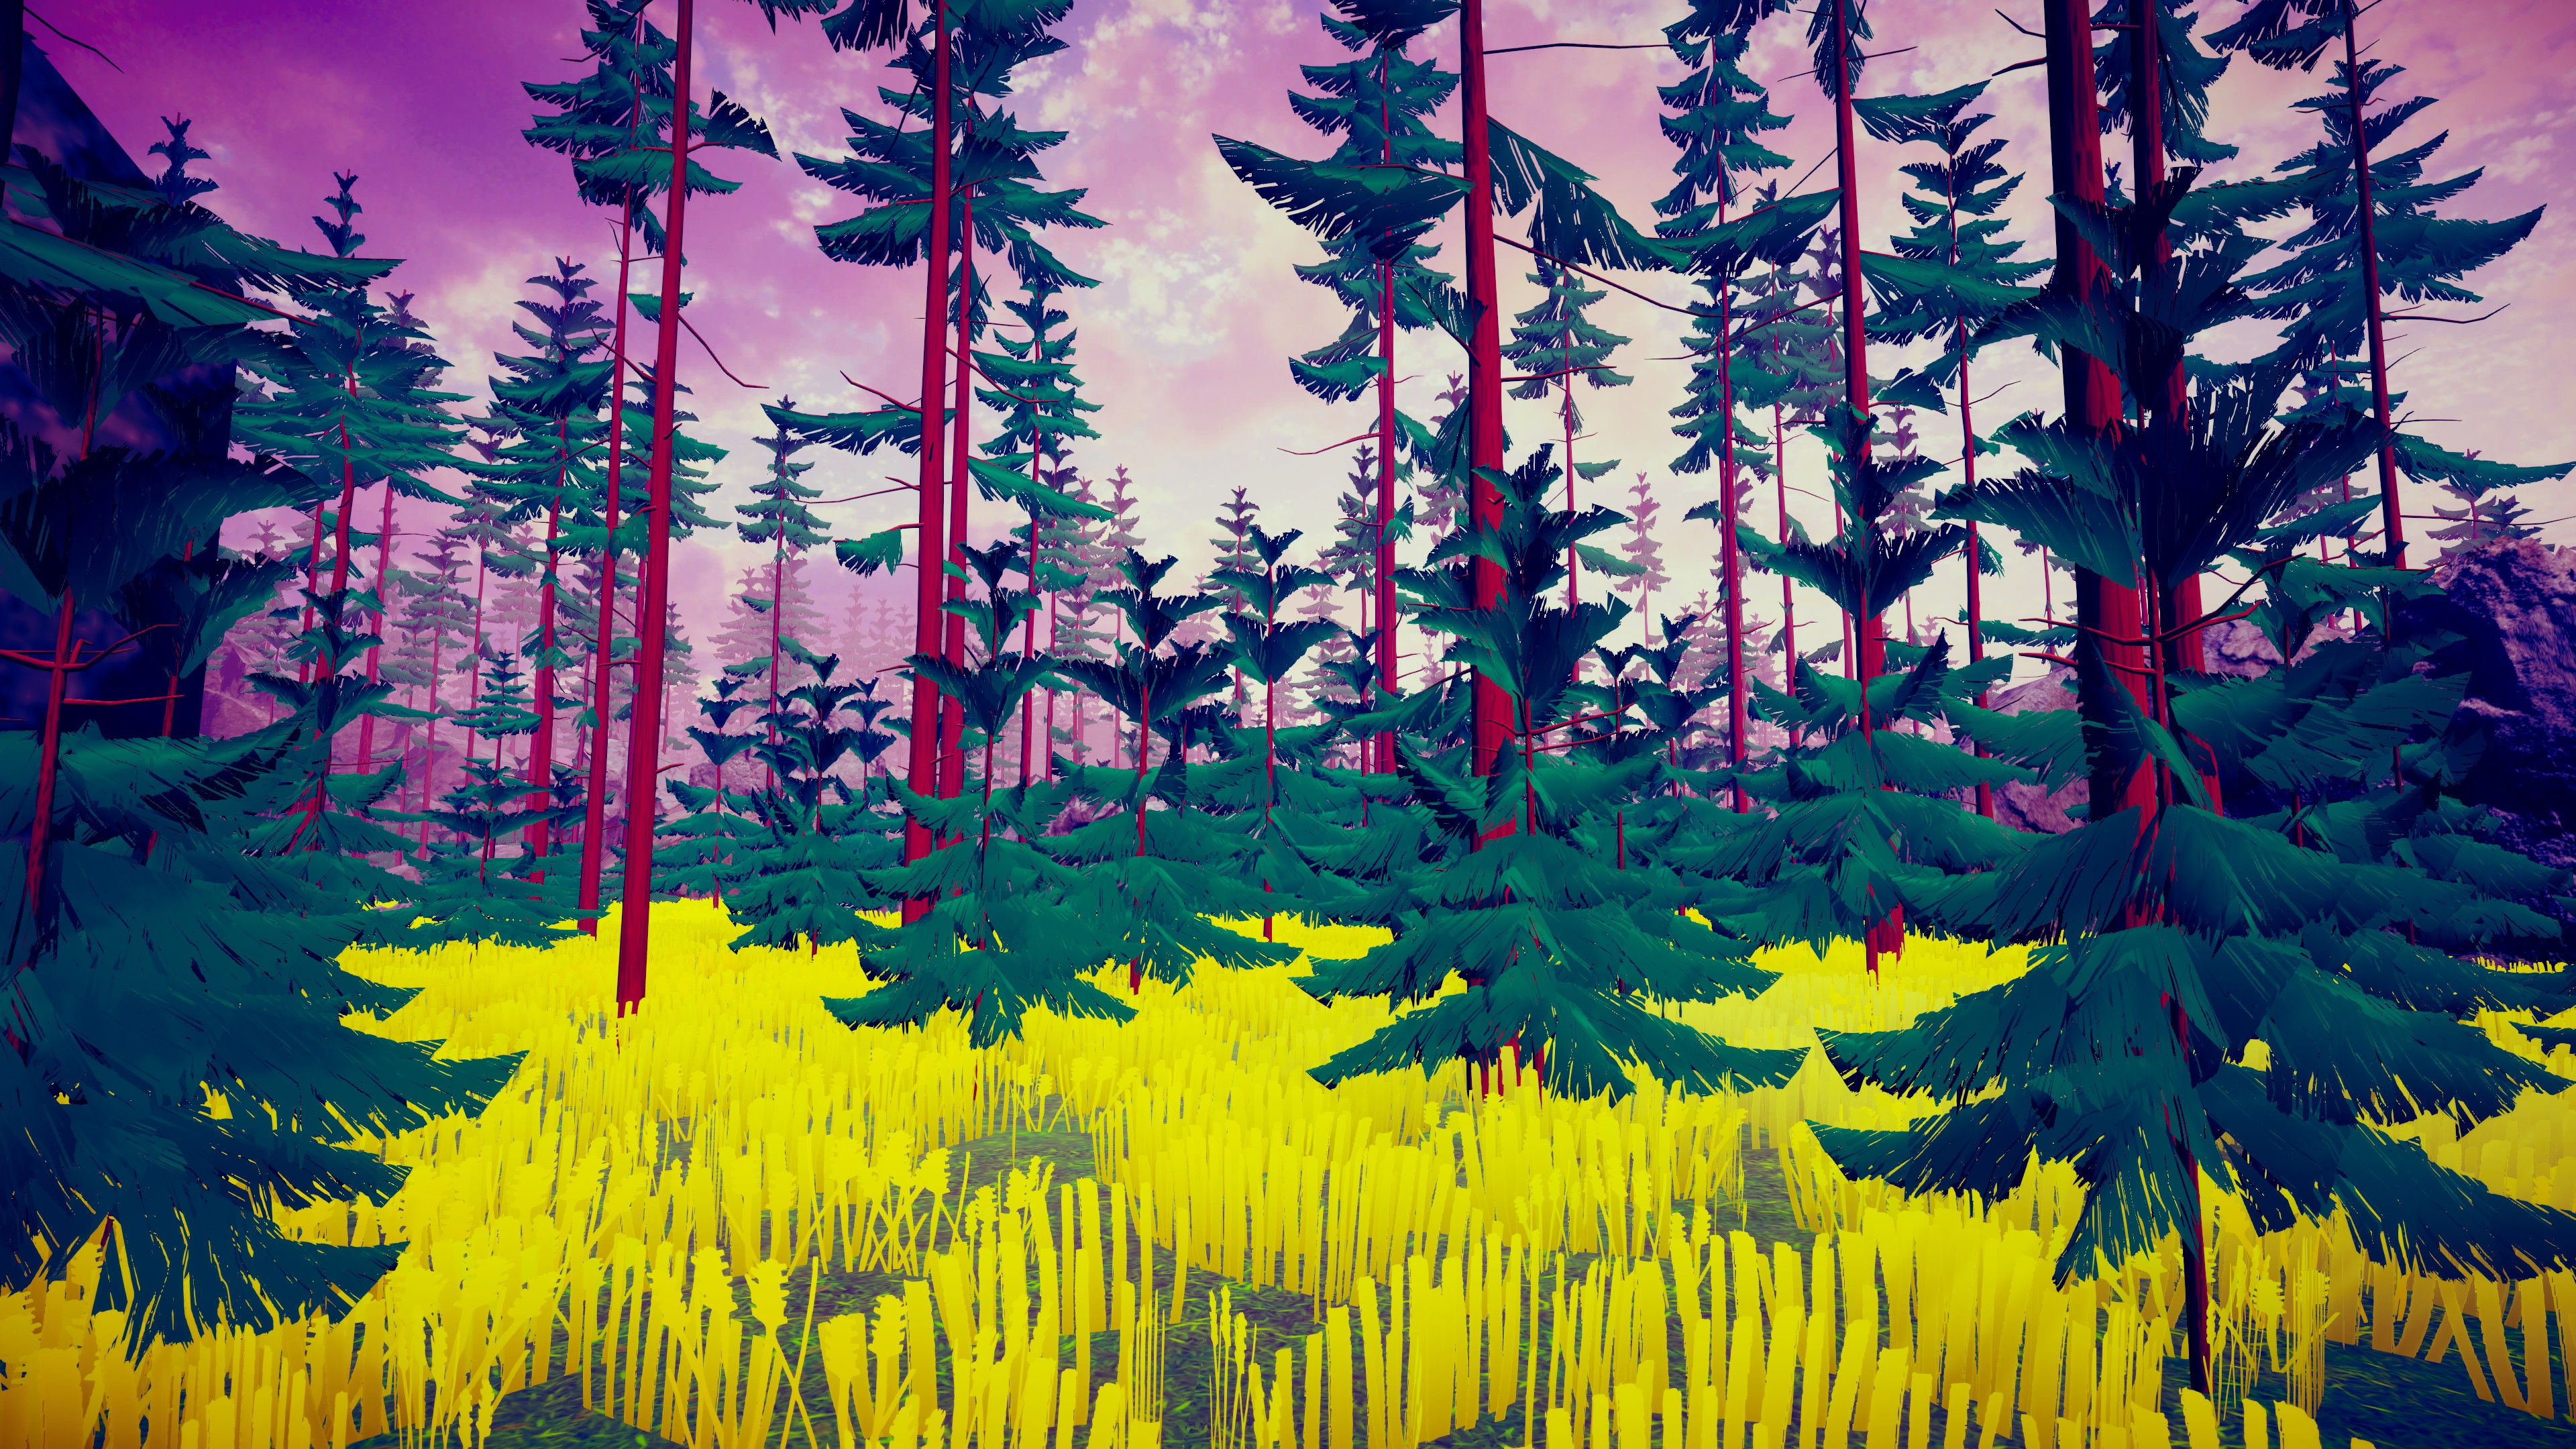 Hike. Forest of trees all made from the same 2 or 3 visual assets